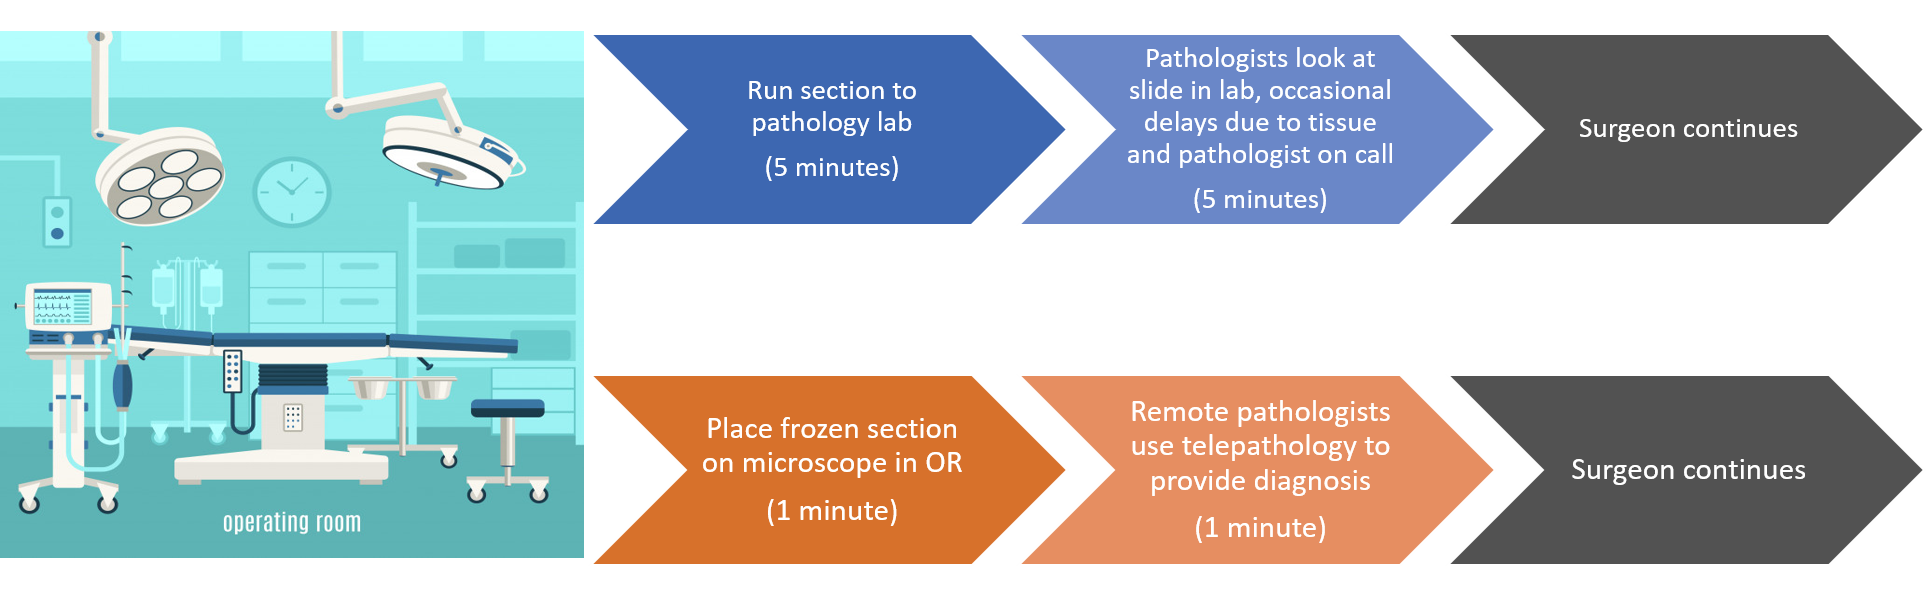 remote telepathology for frozen sections diagram